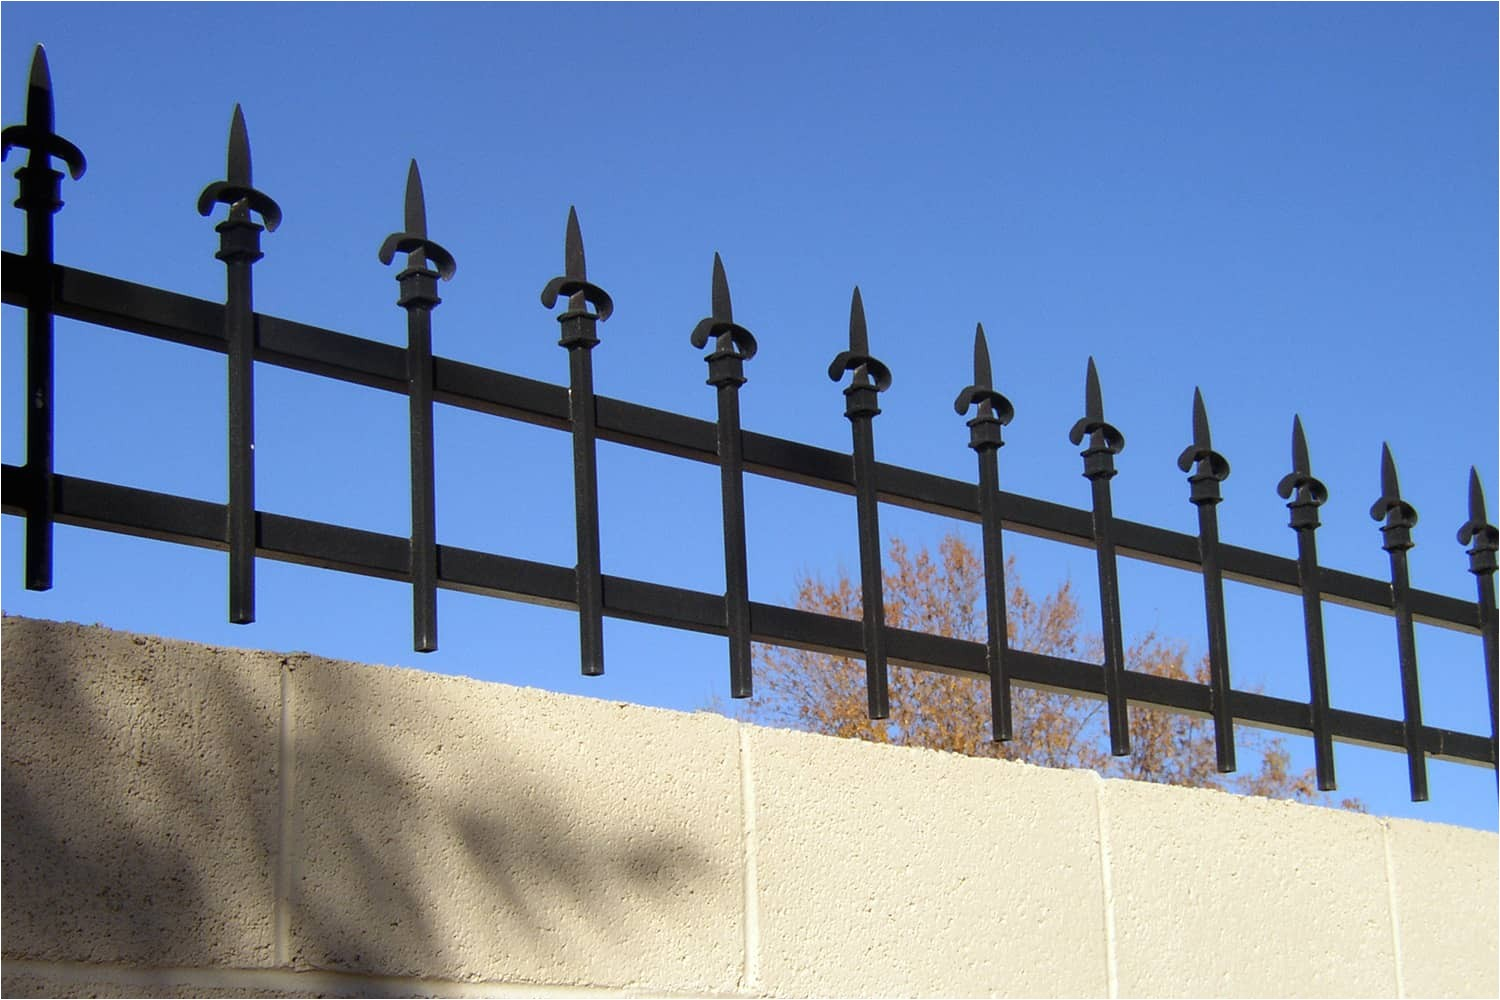 Wrought Iron Fence toppers Decorative Wrought Iron Fencing Examples Sun King Fencing